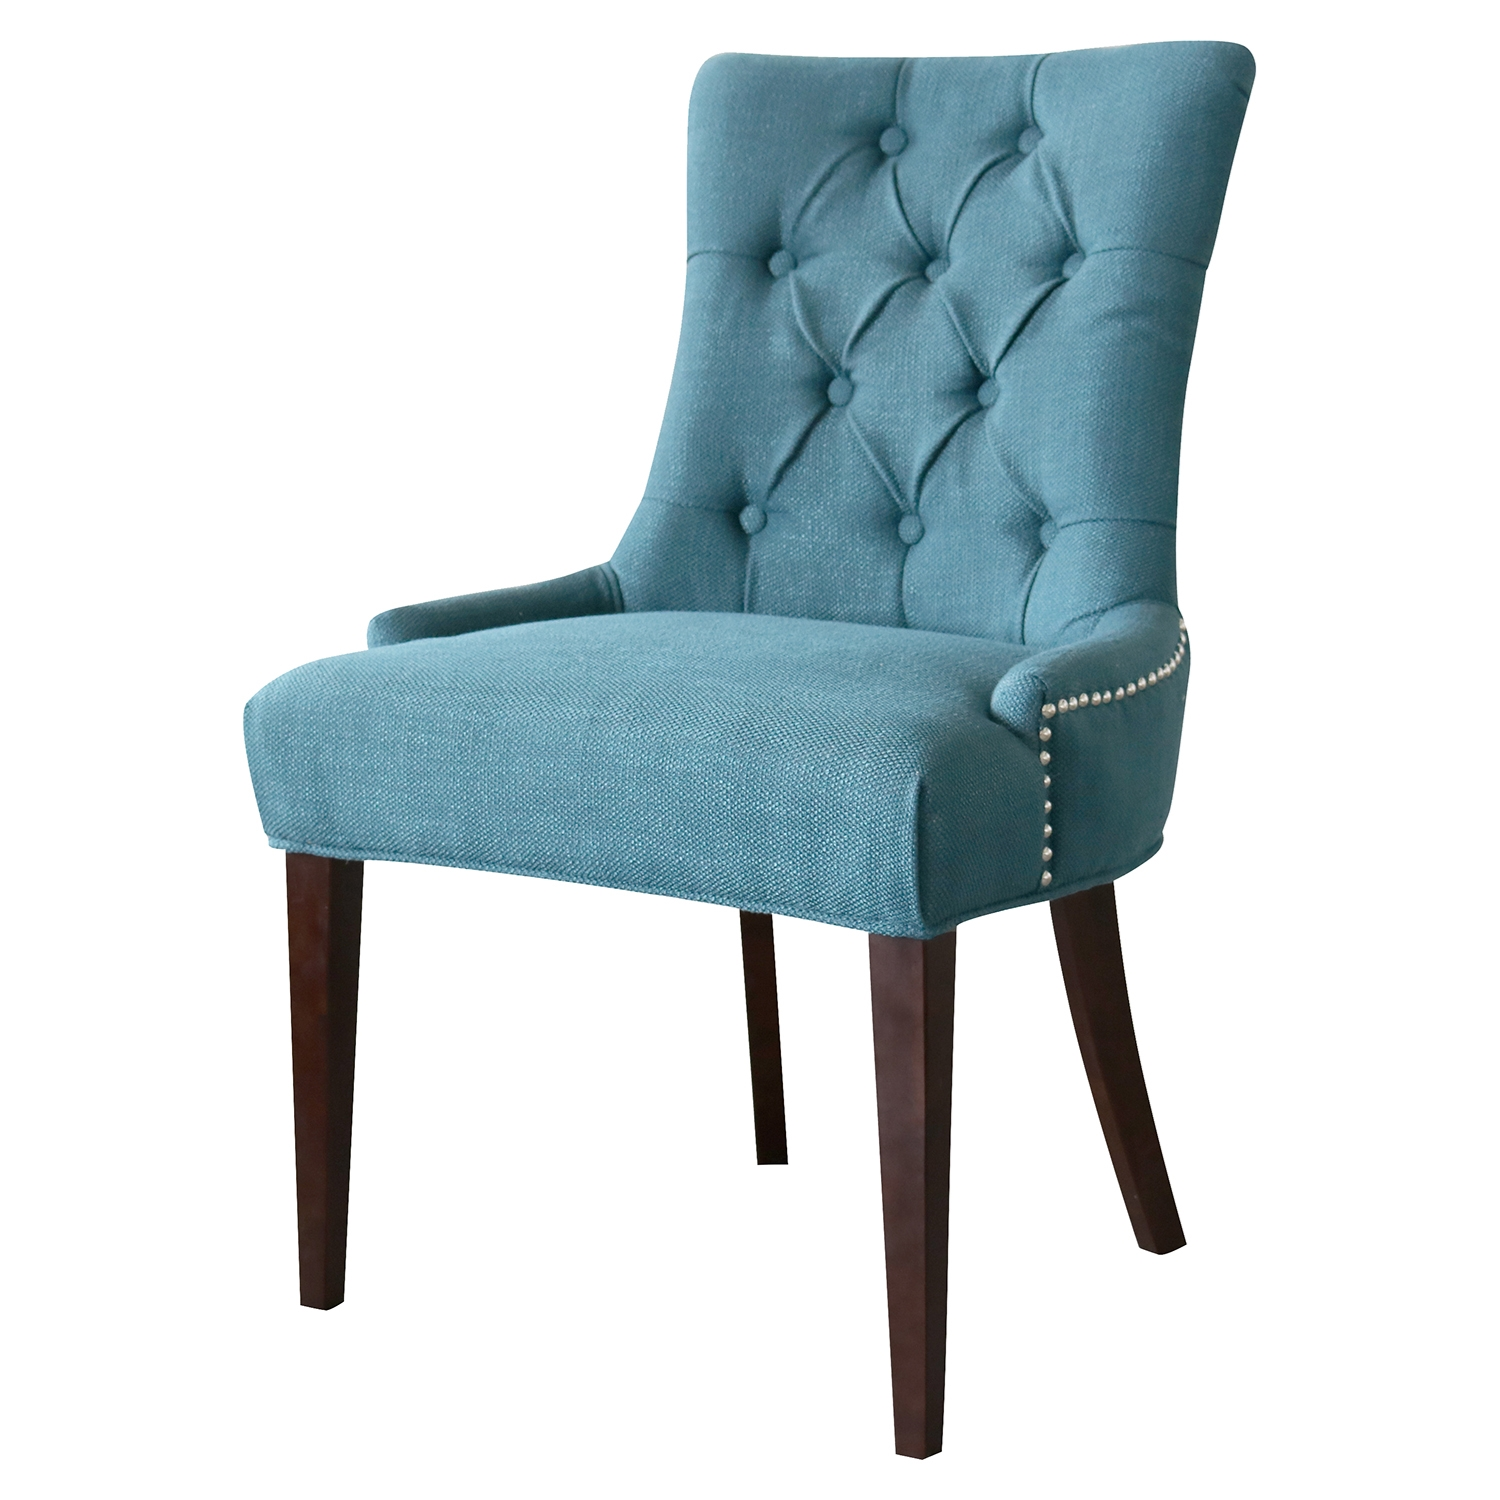 Madelyn Chair - Ocean, Button Tufted